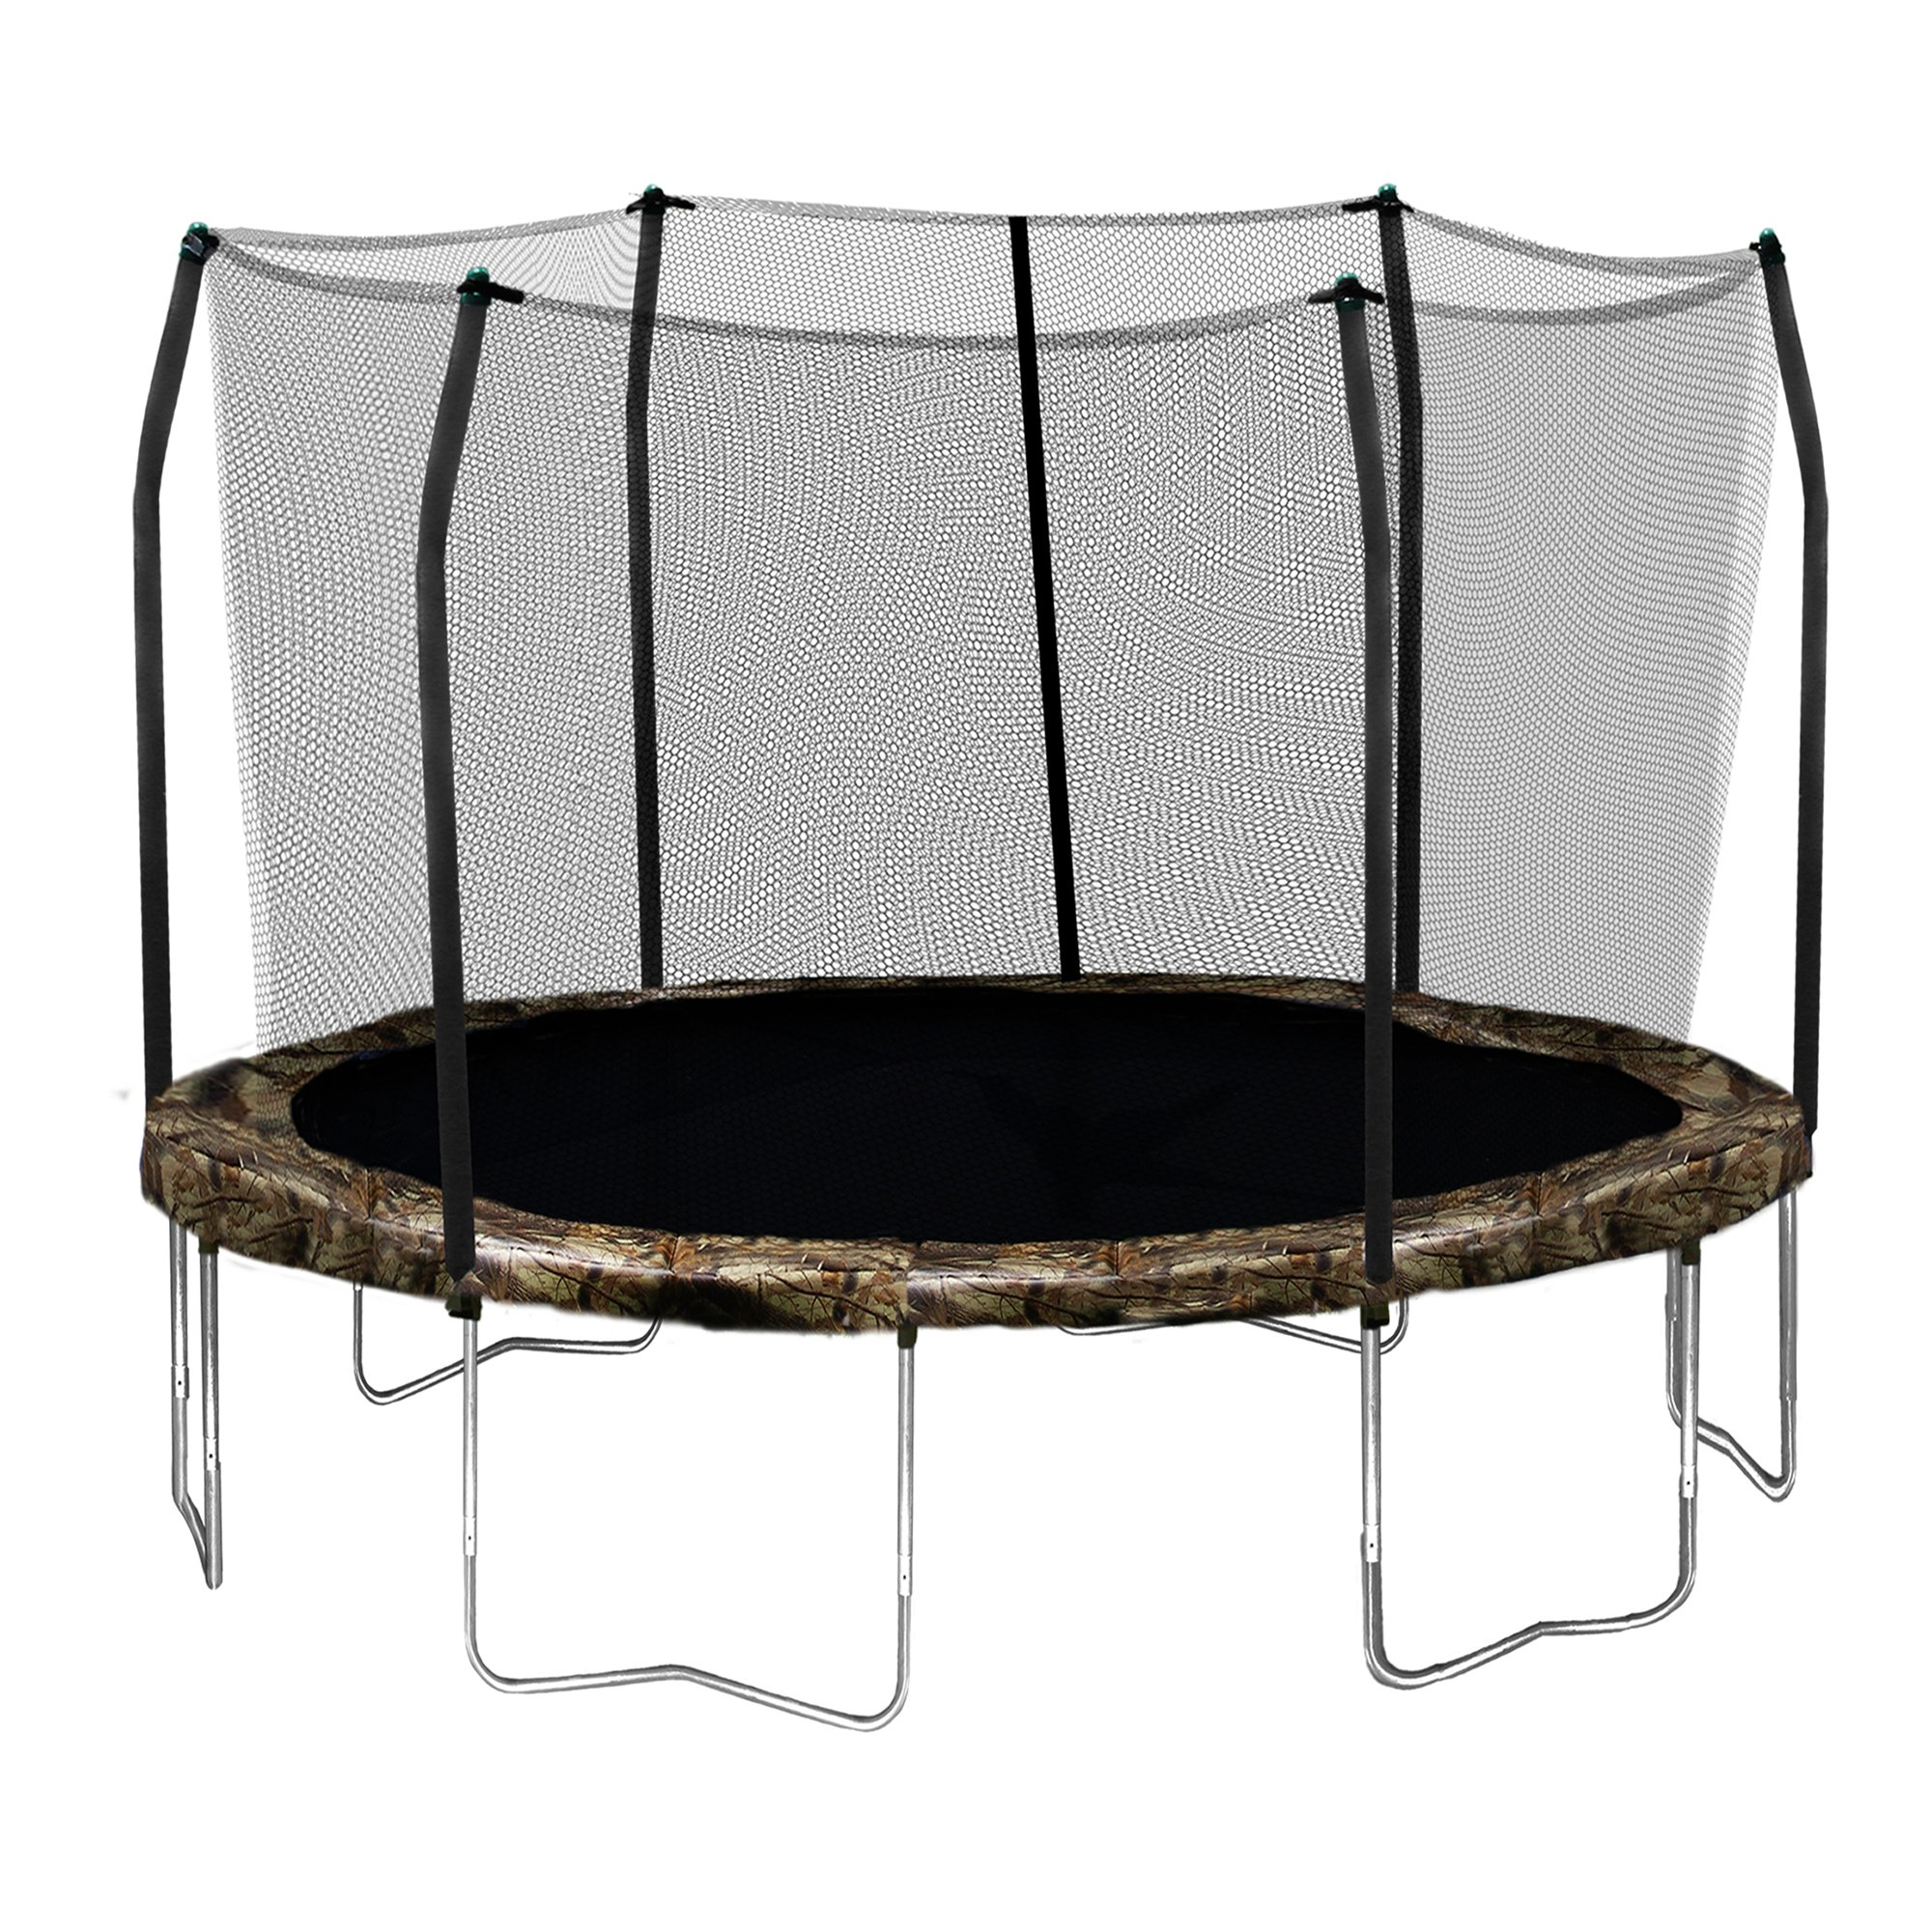 Skywalker Trampolines Round Trampoline and Enclosure with Camo Spring Pad, 12 Feet by Skywalker Trampolines